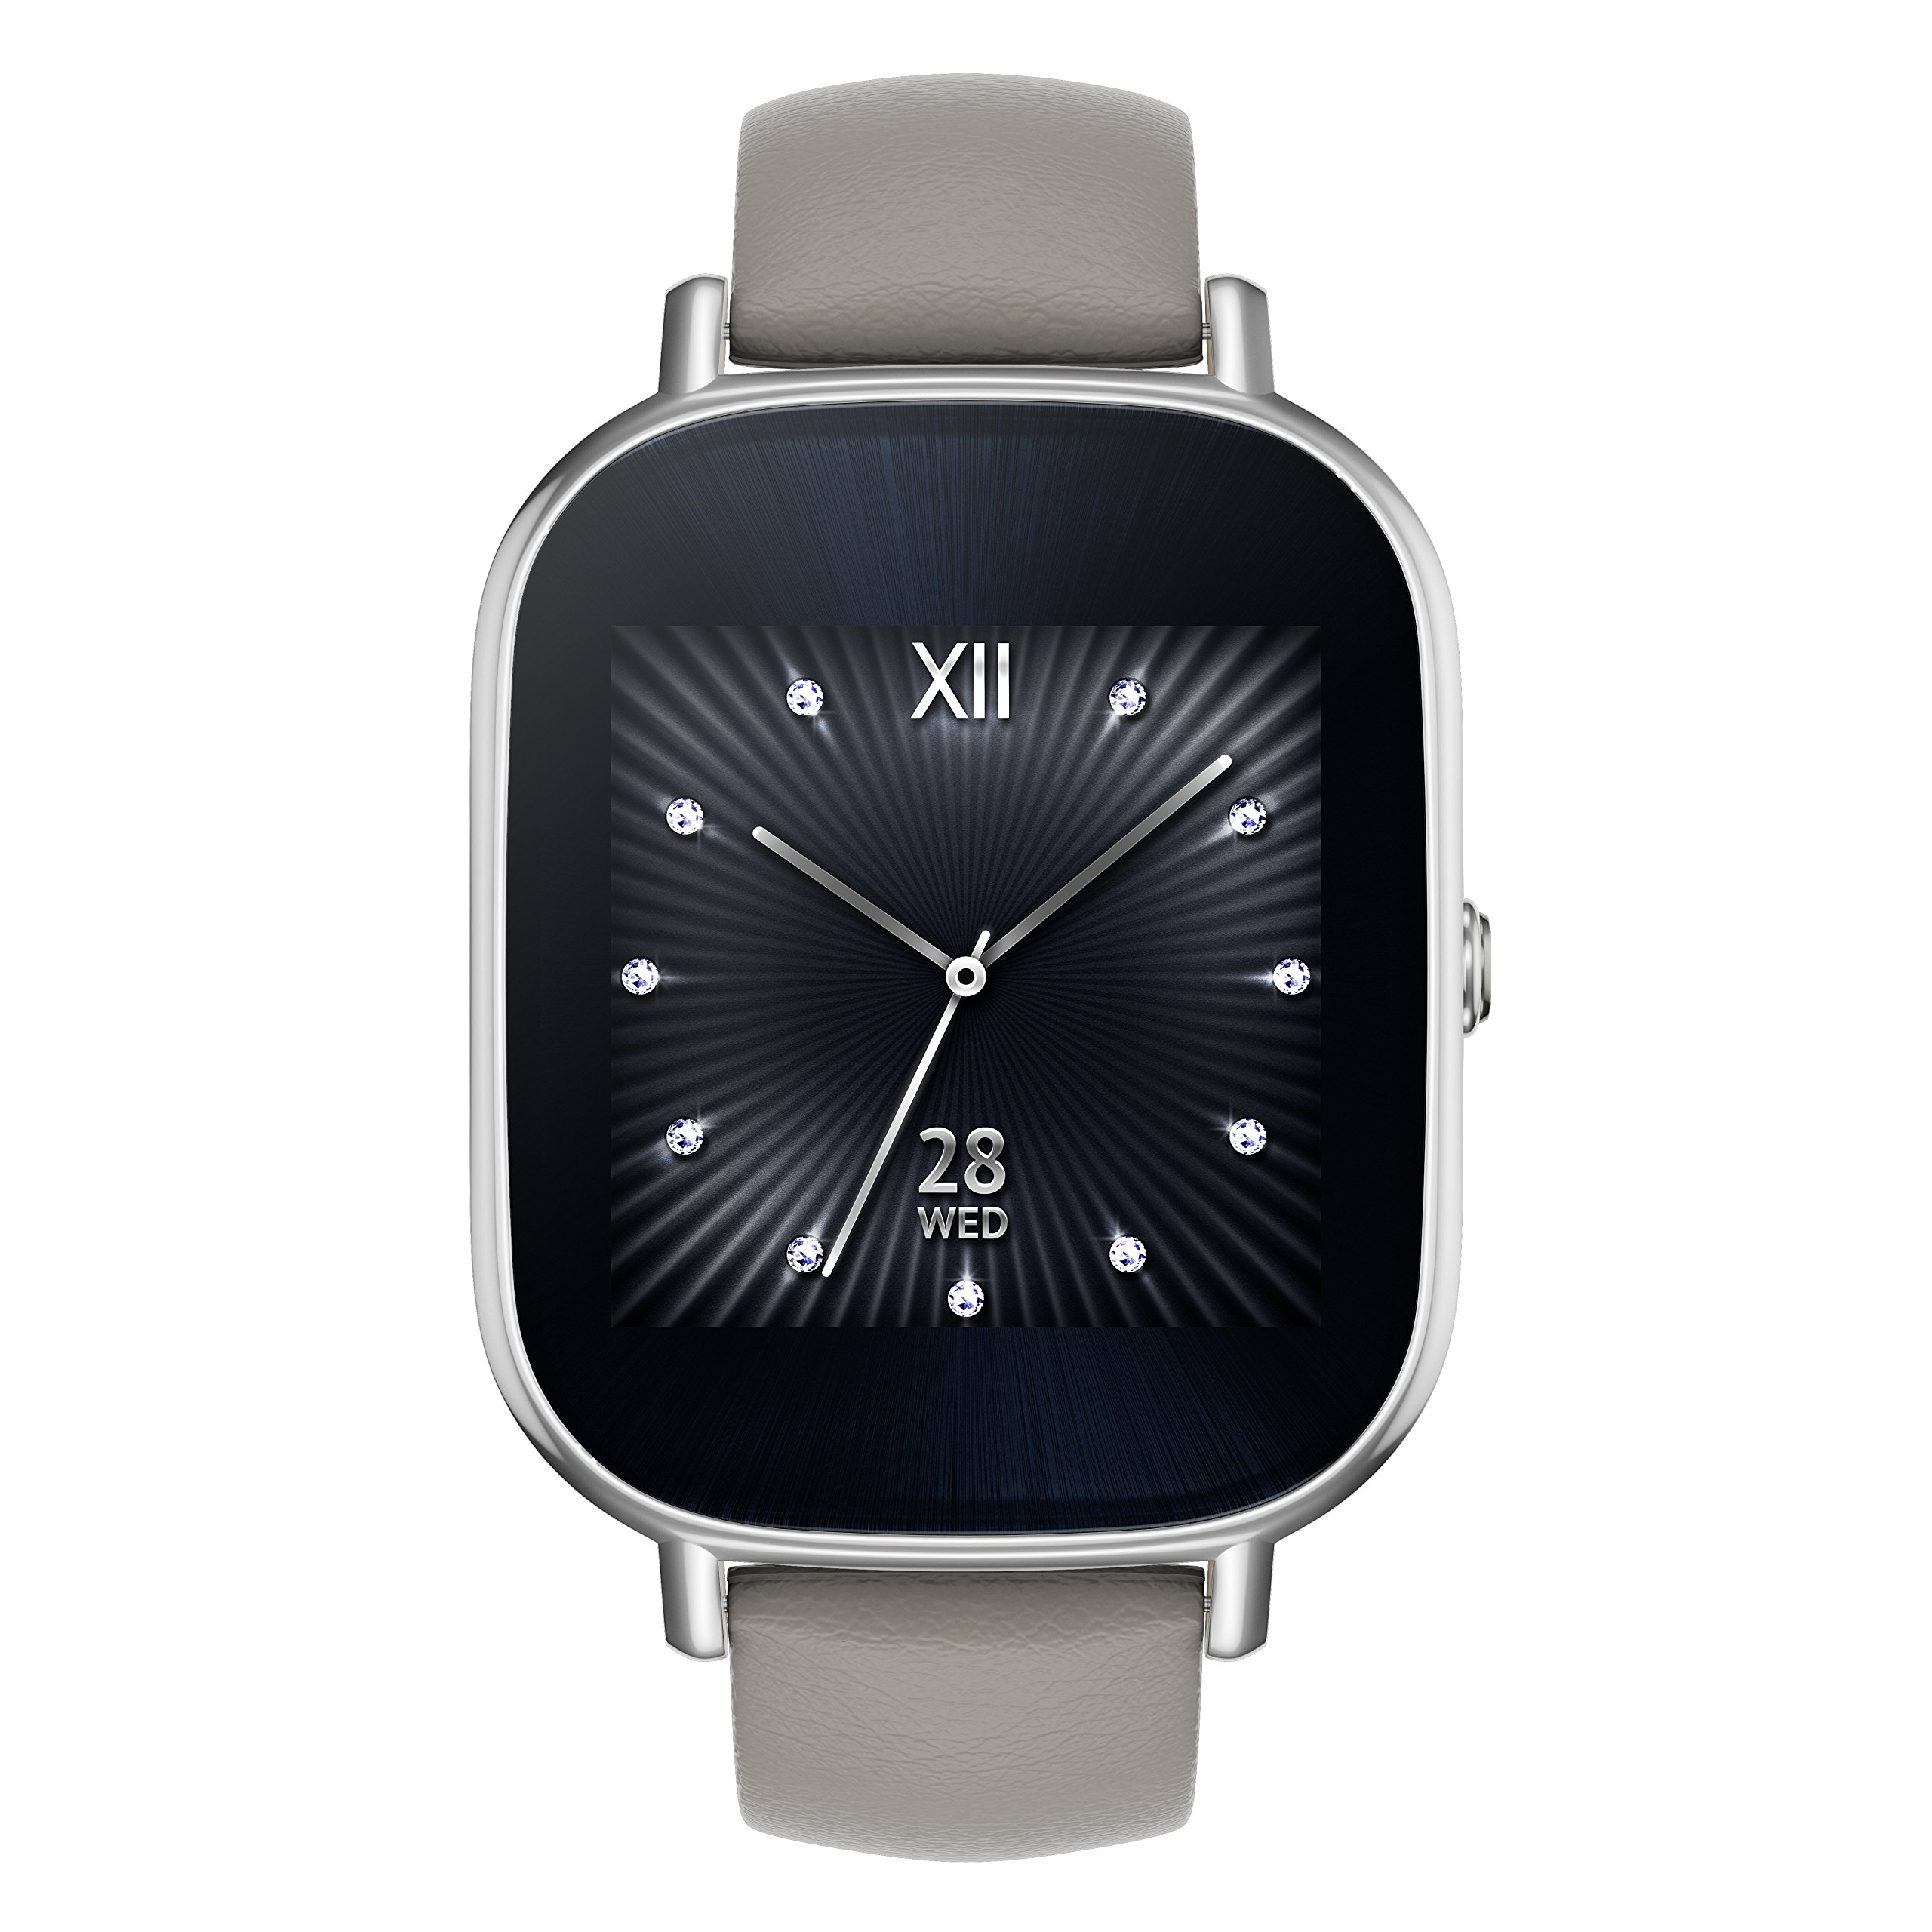 ویکالا · خرید  اصل اورجینال · خرید از آمازون · ASUS ZenWatch 2 Silver with Beige Leather Strap 37mm Smart Watch with Quick Charge Battery, 4GB Storage, 1.45-inch AMOLED Gorilla Glass 3 TouchScreen, IP67 Water Resistant (International Version) wekala · ویکالا